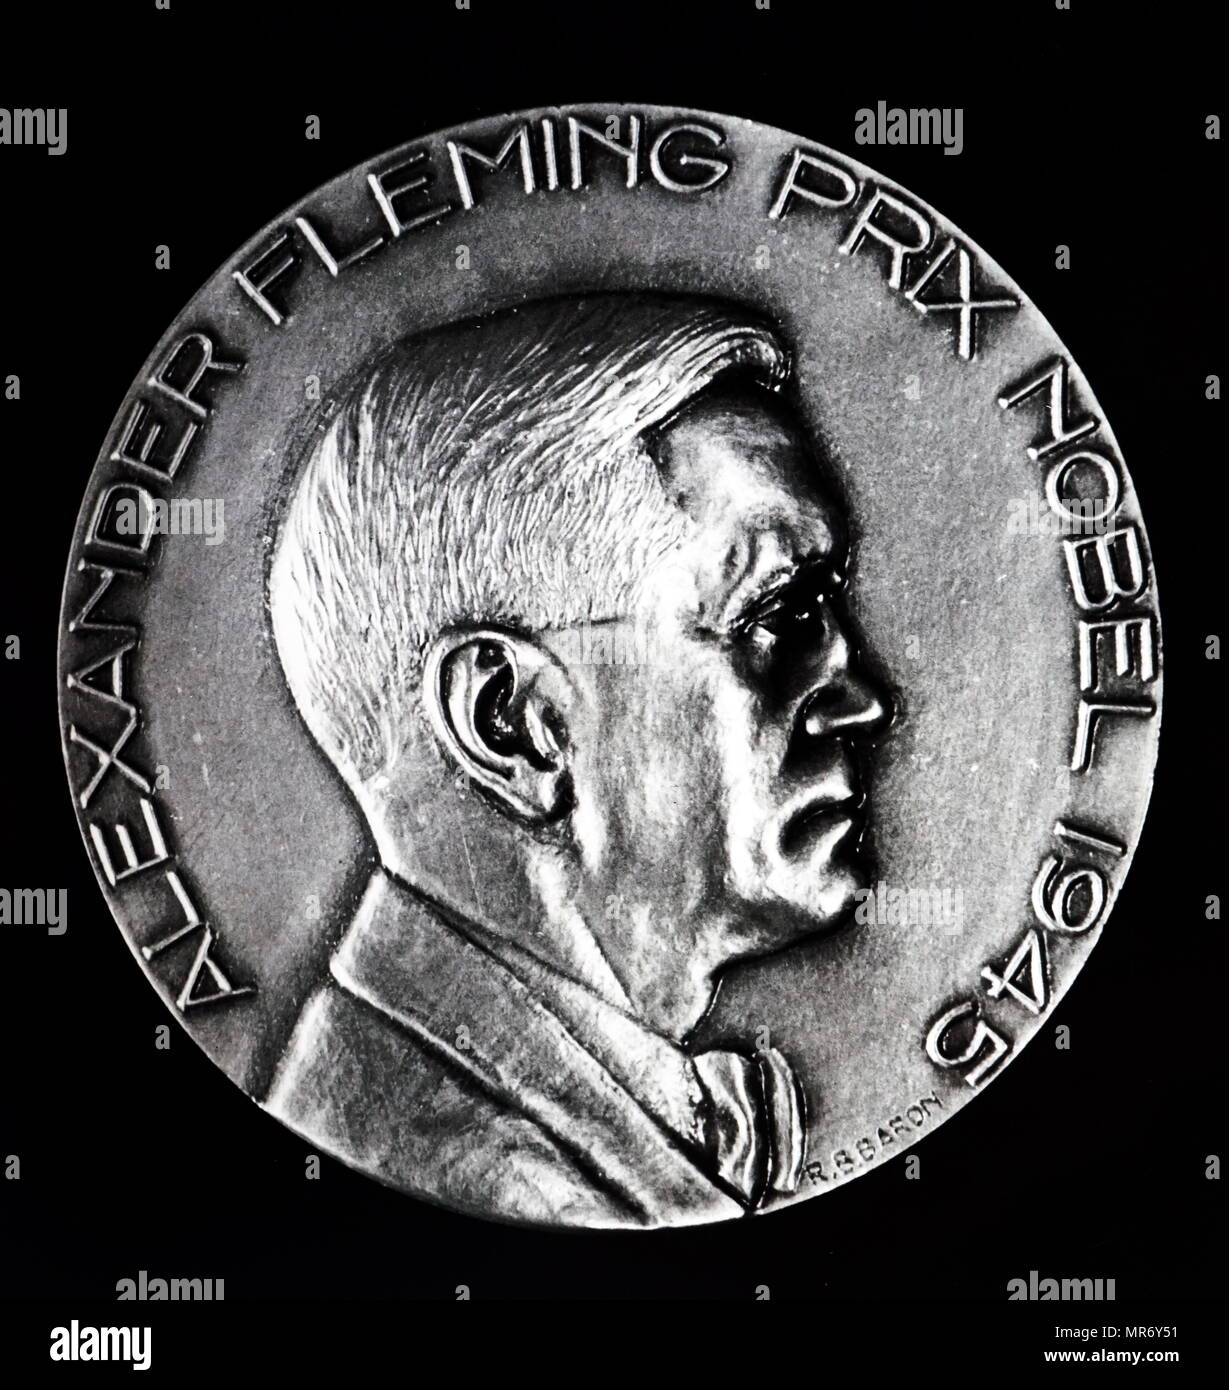 Medal commemorating Alexander Fleming's Nobel Prize win in 1945. Alexander Fleming (1881-1955) a Scottish physician, microbiologist, and pharmacologist. Dated 20th century - Stock Image